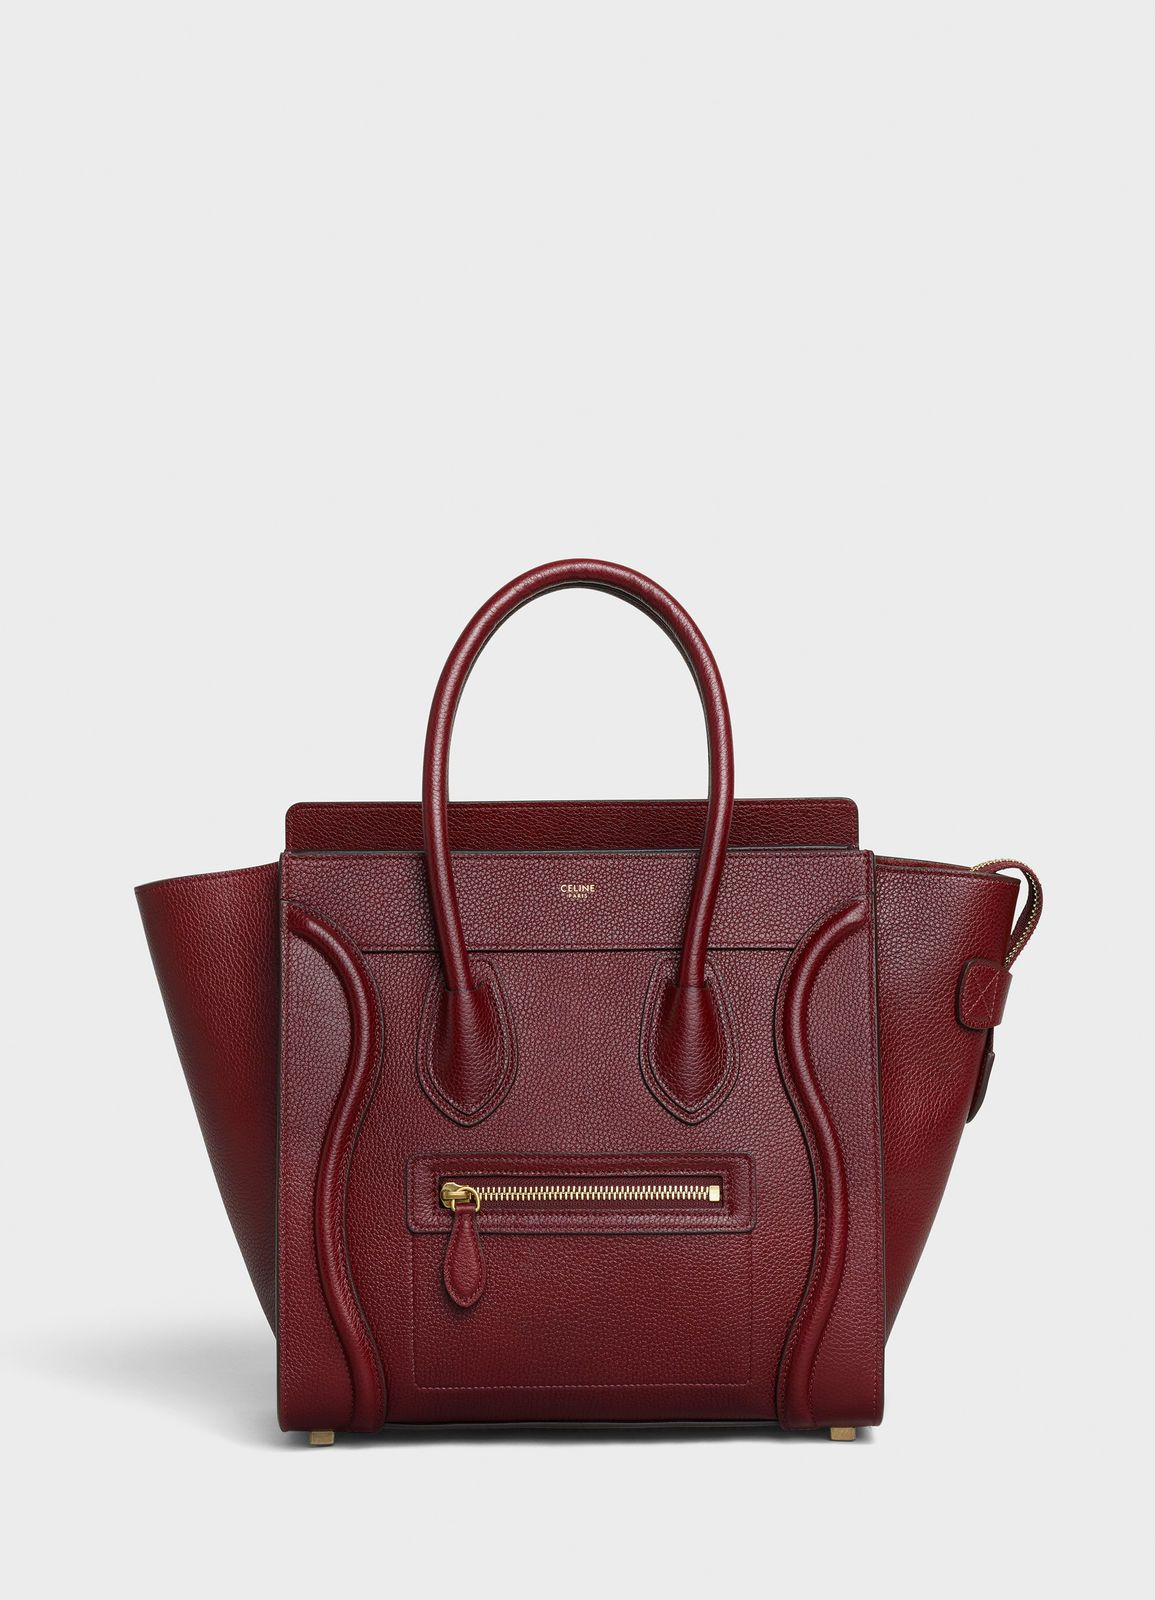 Micro Luggage Handbag In Drummed Calfskin Celine See Large Version The First Place